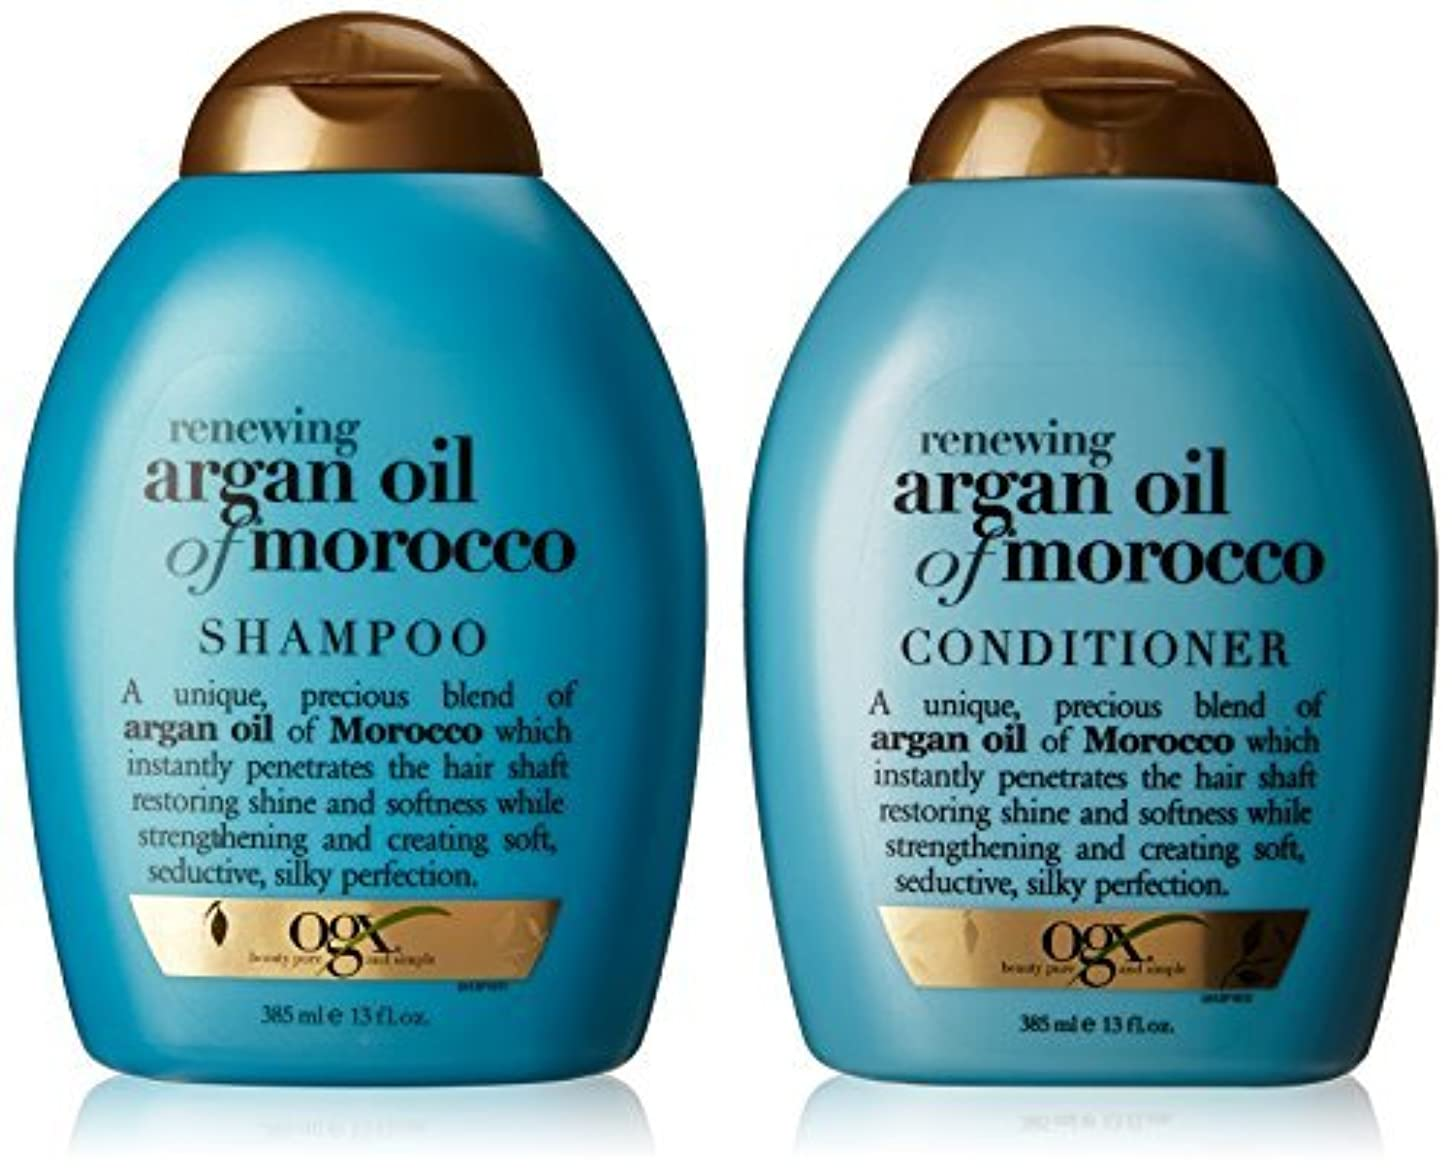 OGX Renewing Argan Oil of Morocco Shampoo & Conditioner (13 fl. Oz.) [並行輸入品]